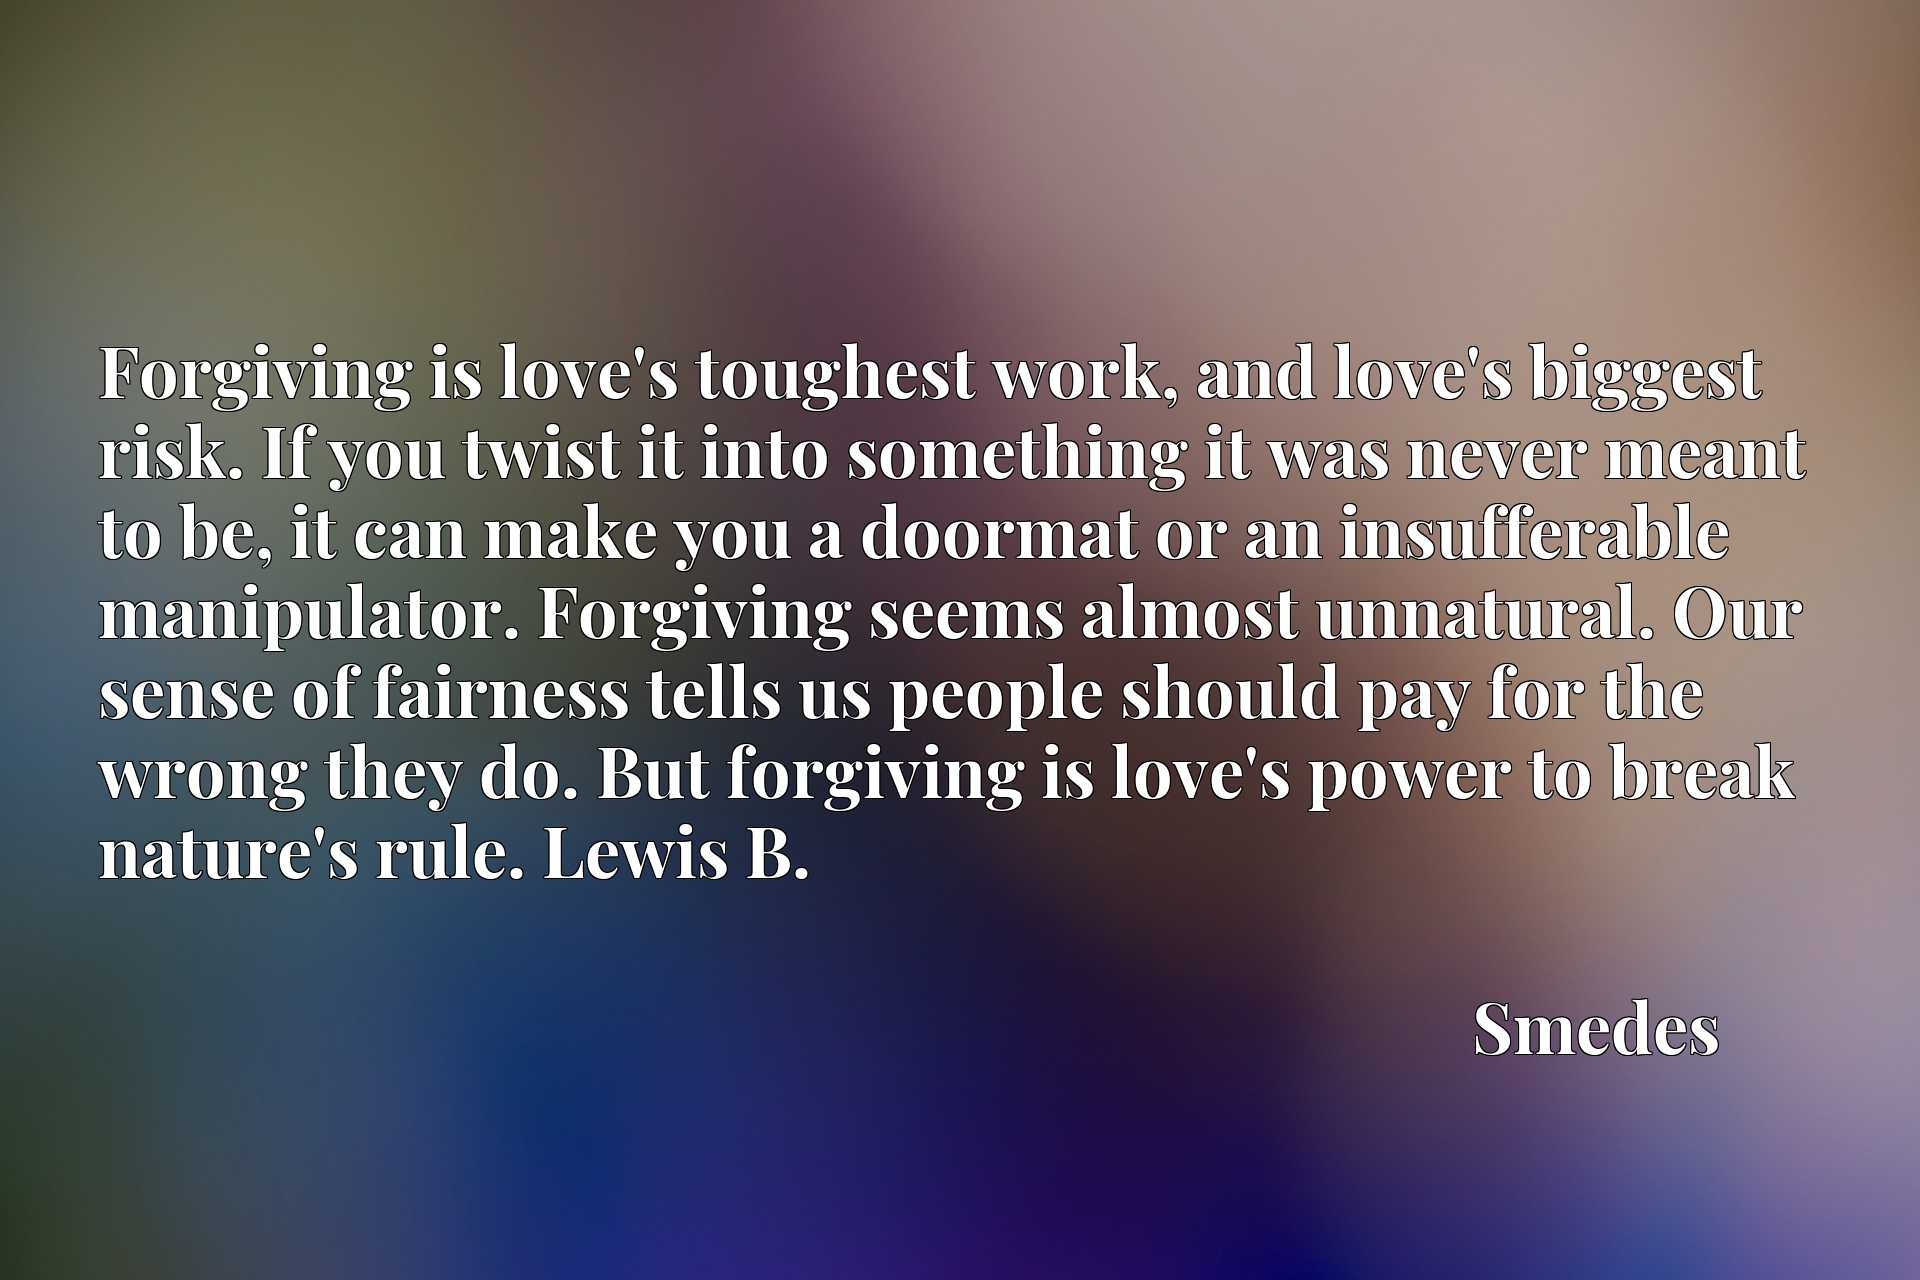 Forgiving is love's toughest work, and love's biggest risk. If you twist it into something it was never meant to be, it can make you a doormat or an insufferable manipulator. Forgiving seems almost unnatural. Our sense of fairness tells us people should pay for the wrong they do. But forgiving is love's power to break nature's rule. Lewis B.